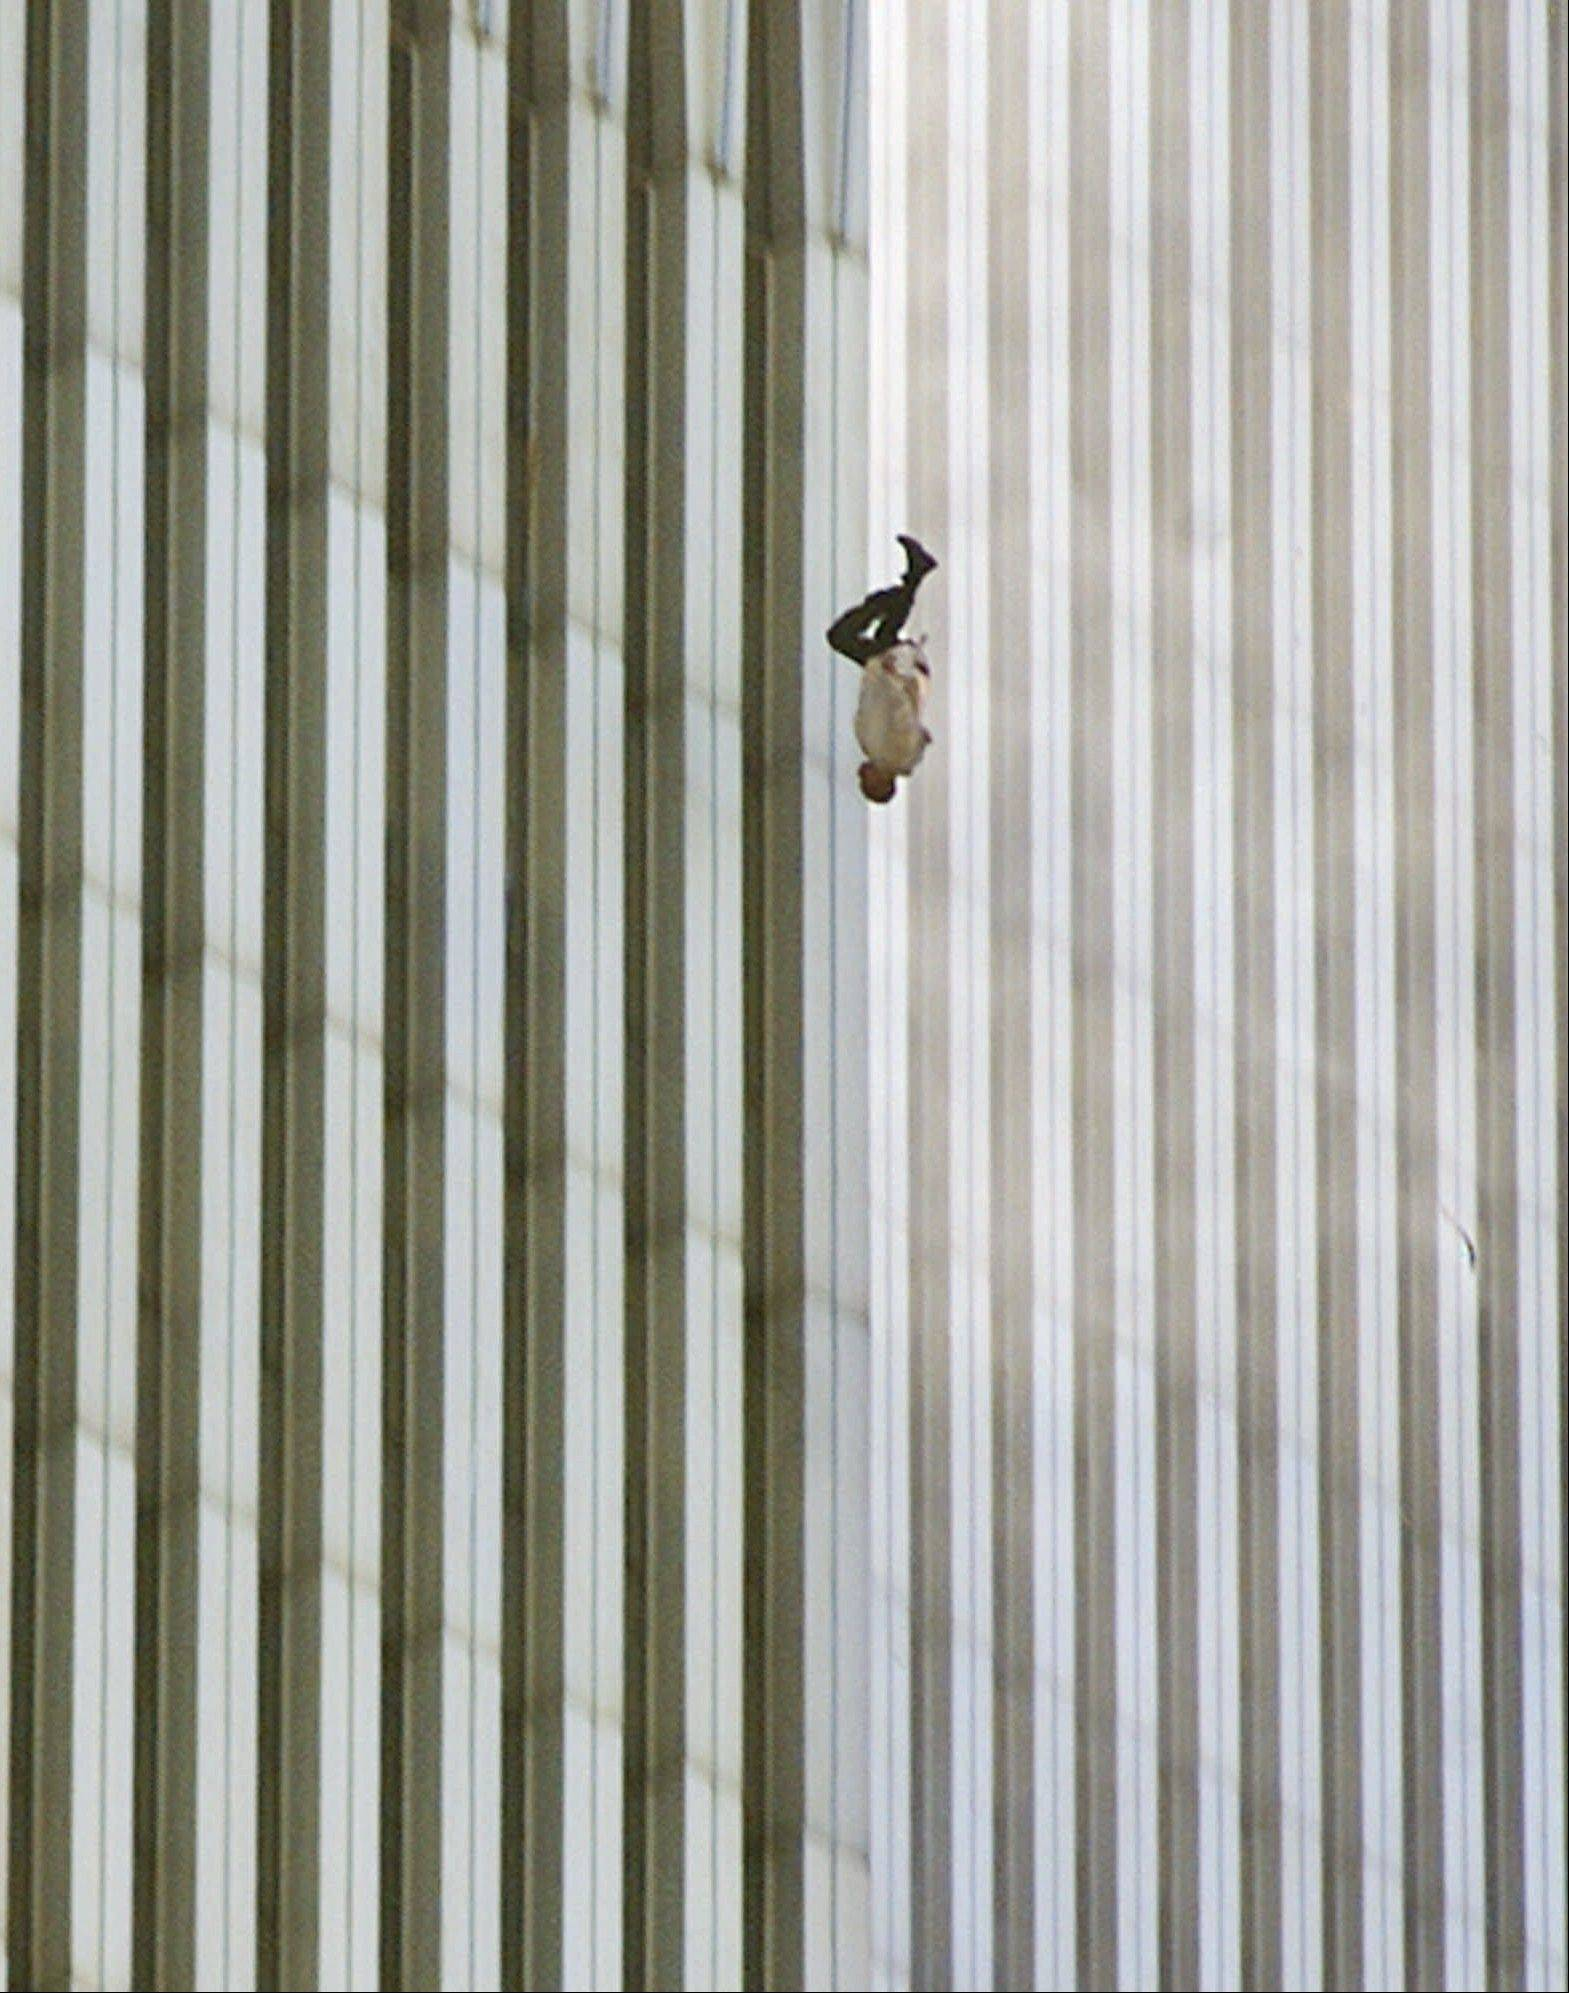 Richard Drew captured this image of a person falling headfirst from the north tower of New York's World Trade Center on Sept. 11, 2001.